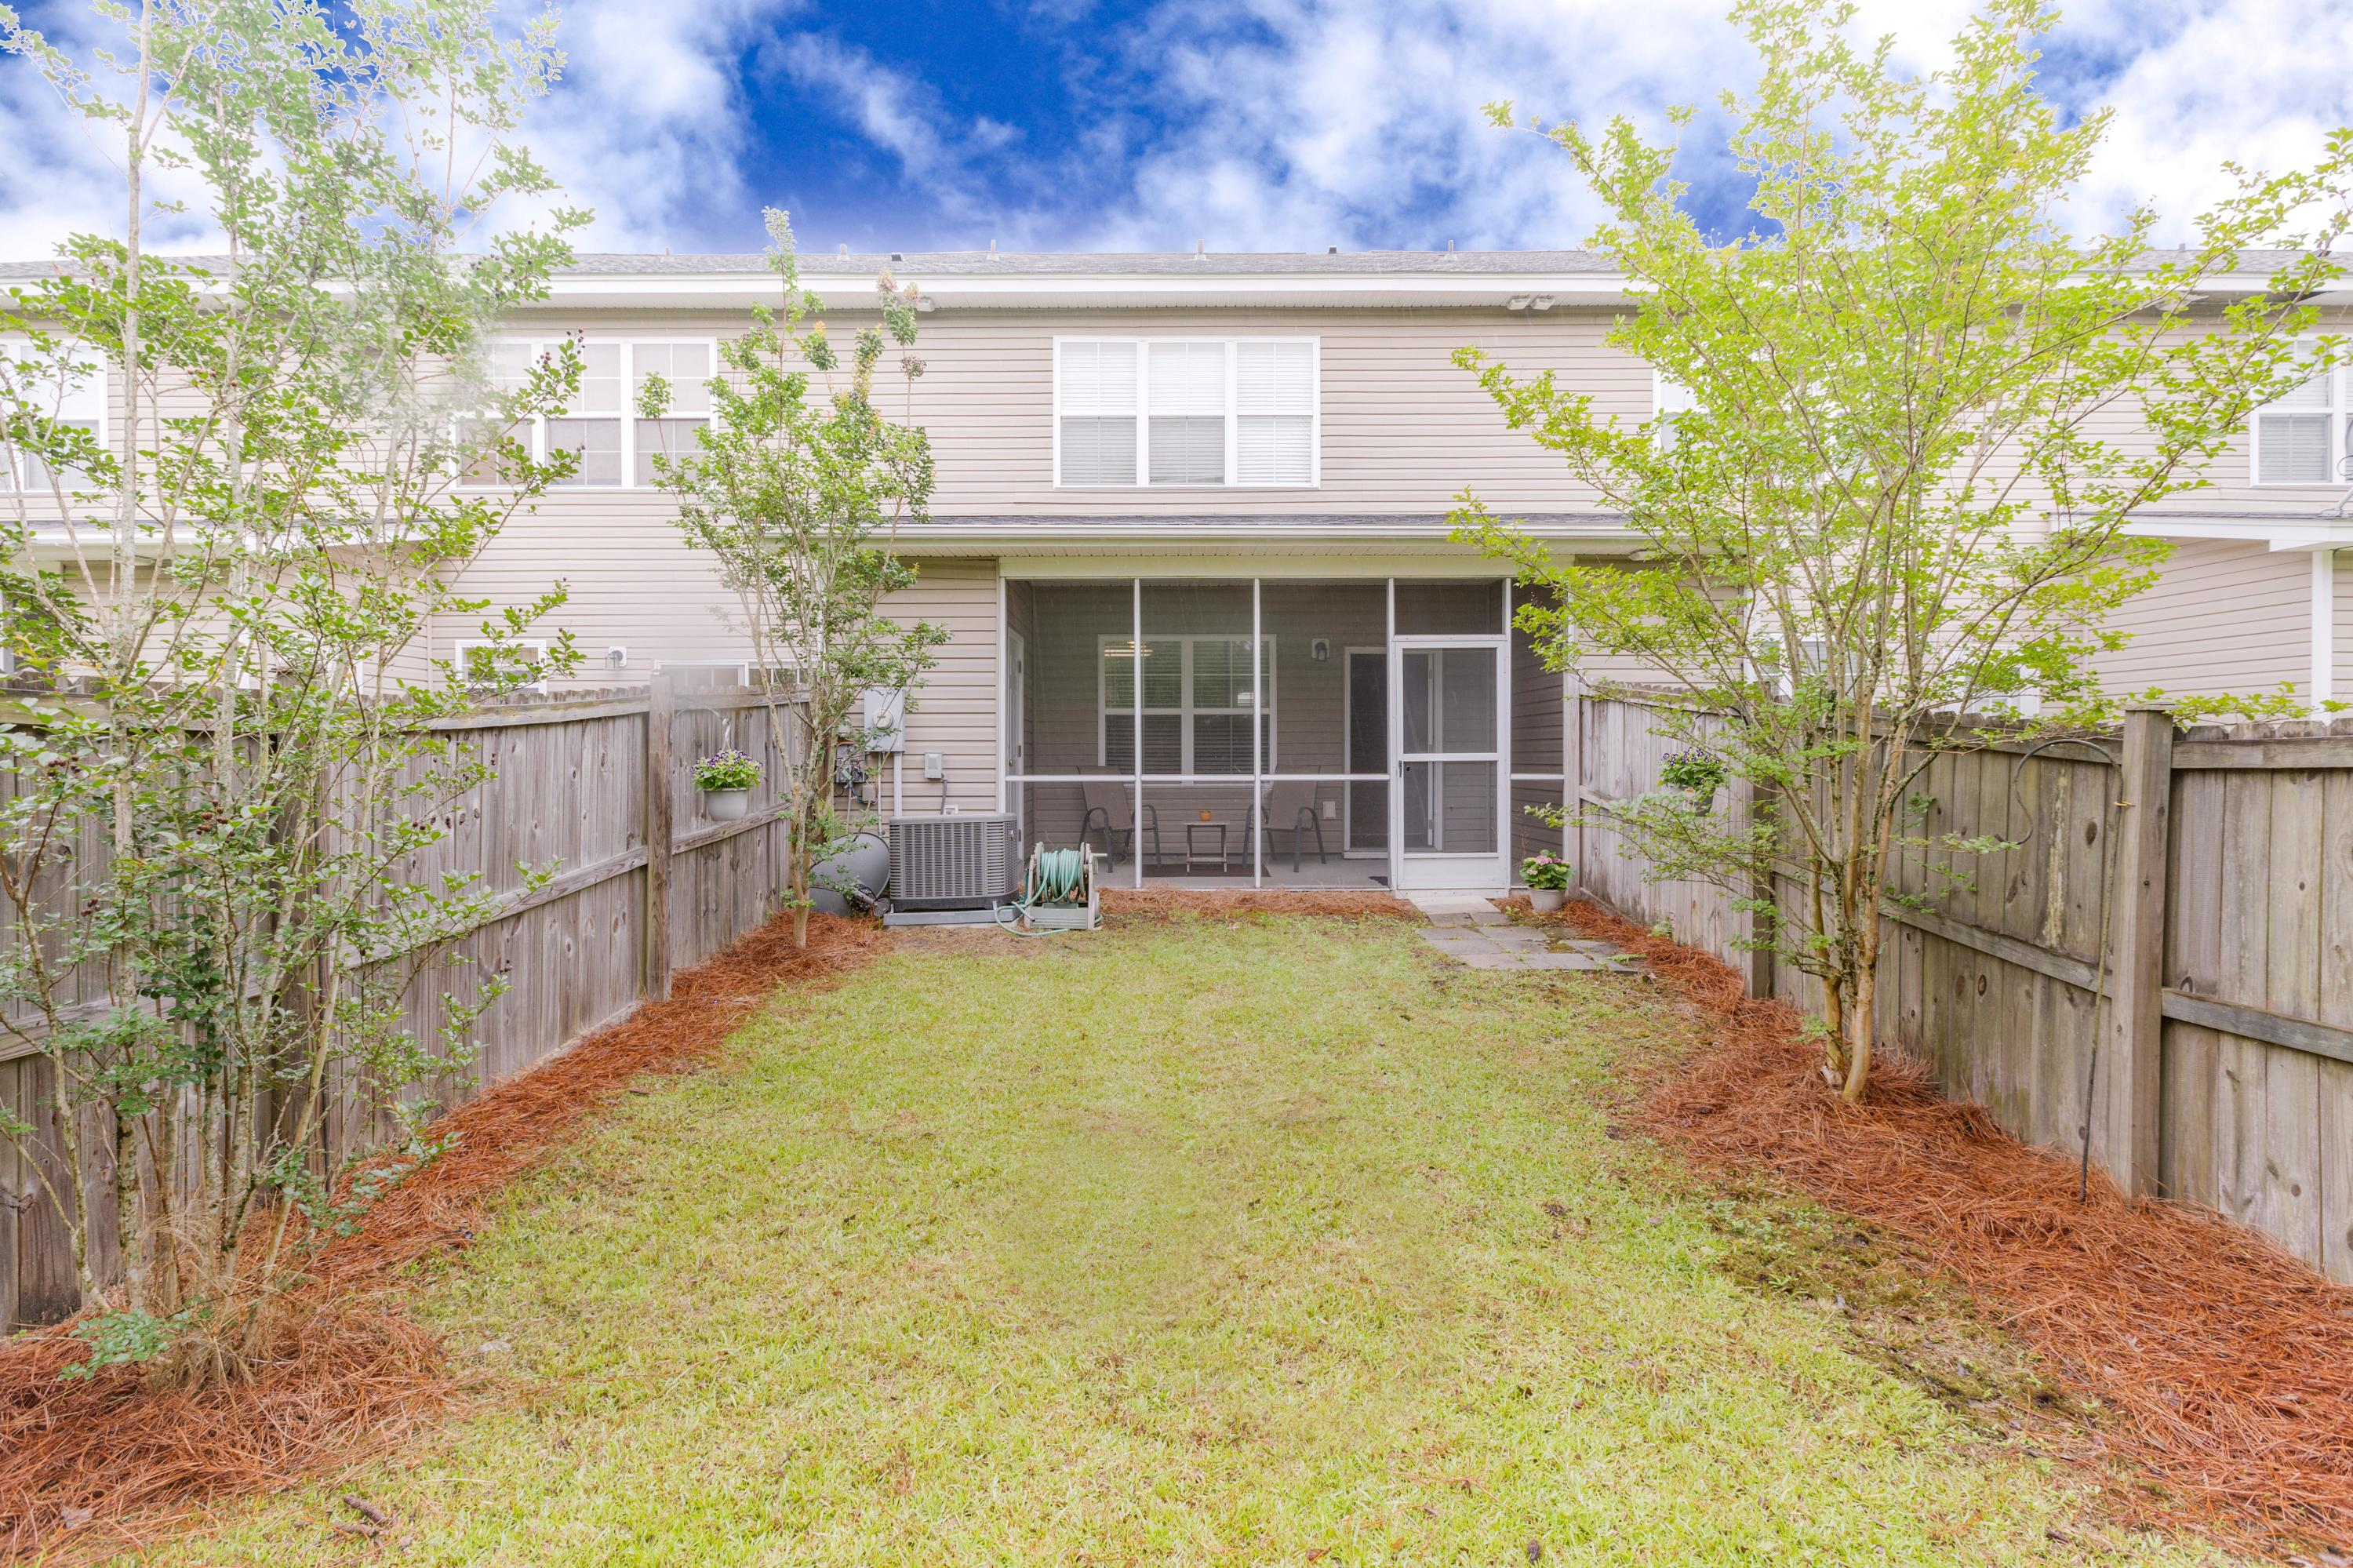 Berkeley Commons Townhomes Homes For Sale - 113 Lamplighter, Summerville, SC - 0